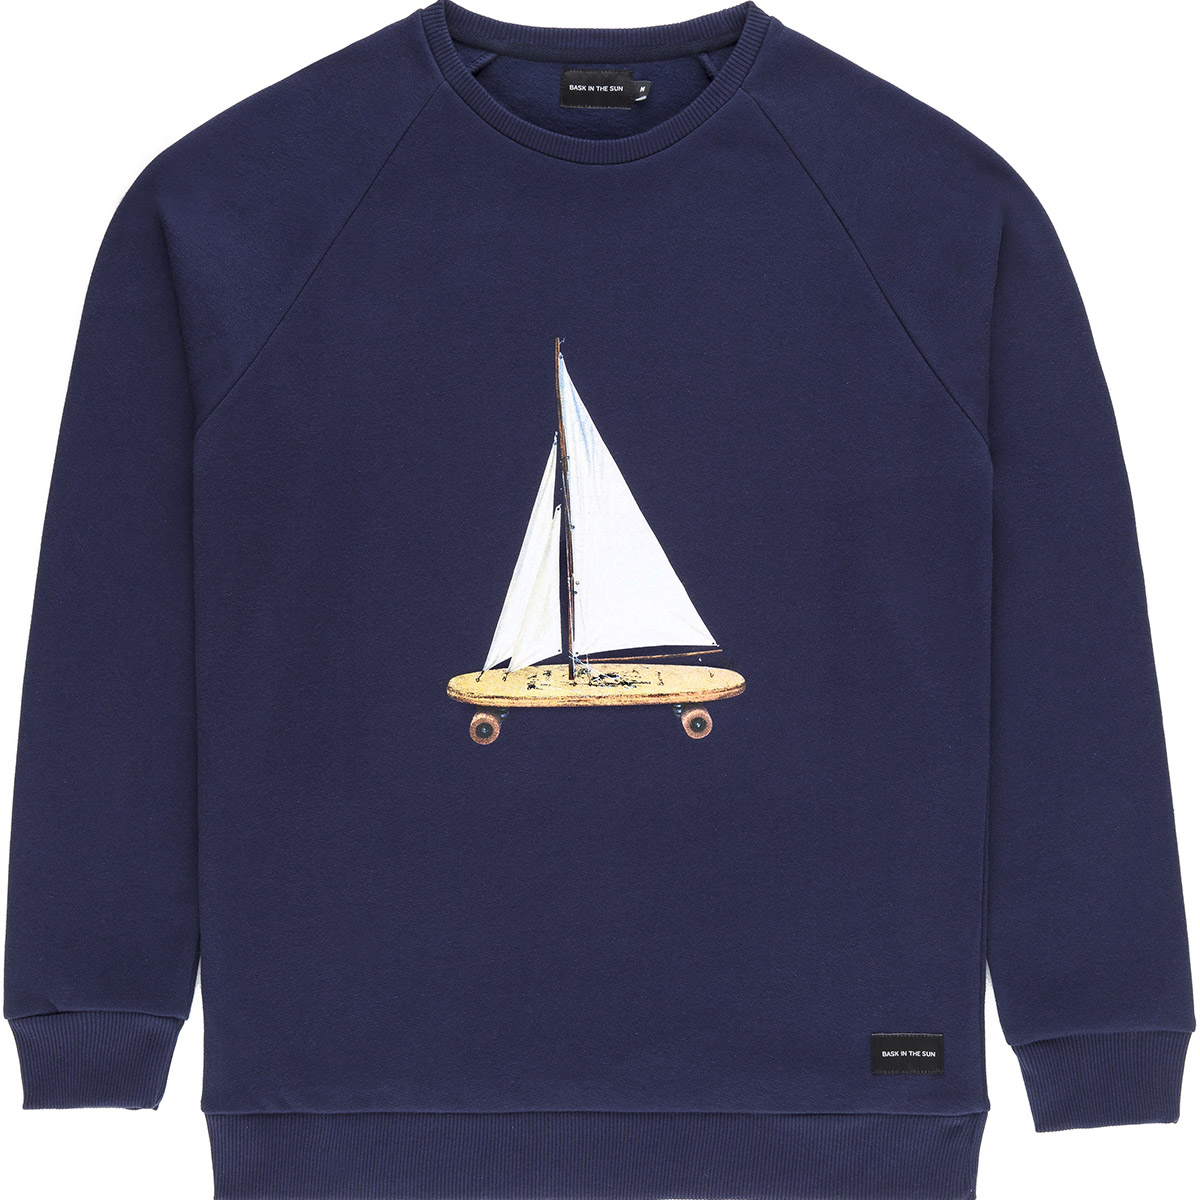 Bask in the Sun - Sweat en coton bio navy voyage